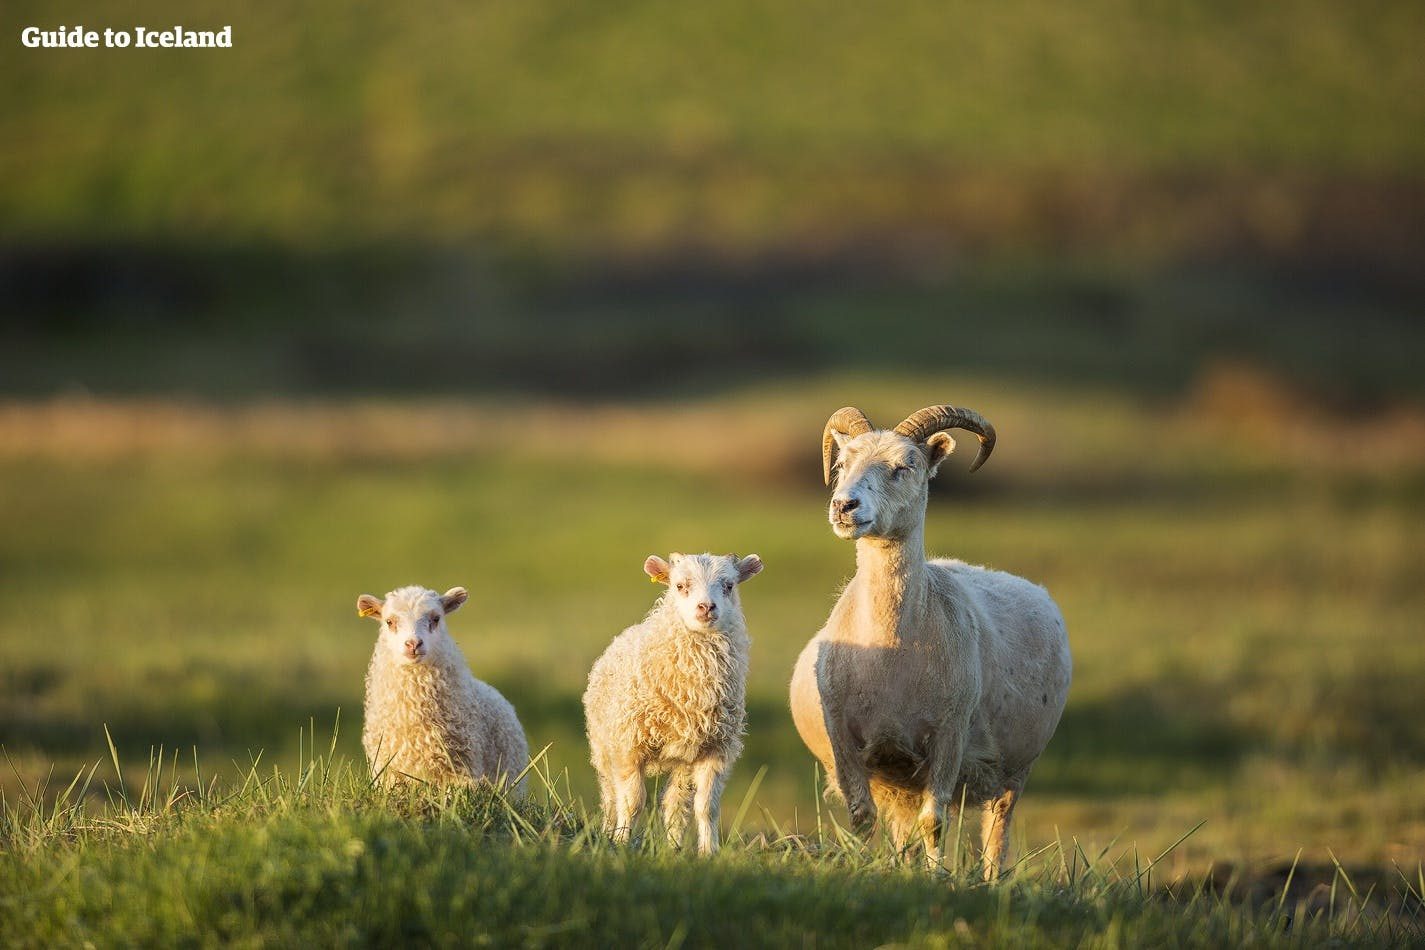 A ewe and her lambs, free-roaming in summer.